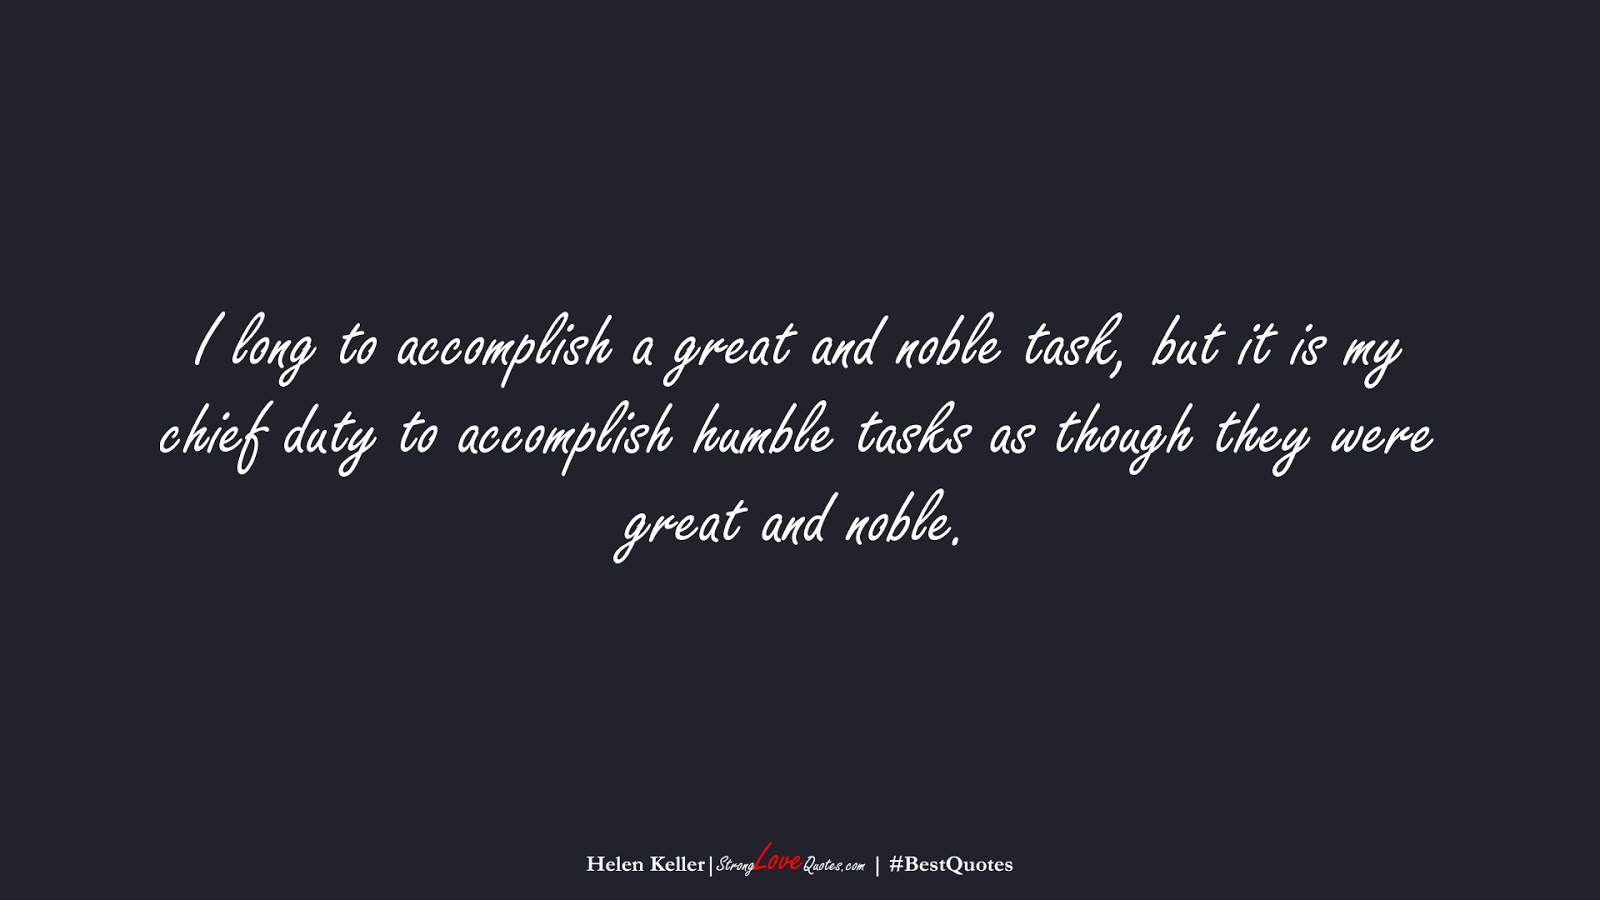 I long to accomplish a great and noble task, but it is my chief duty to accomplish humble tasks as though they were great and noble. (Helen Keller);  #BestQuotes